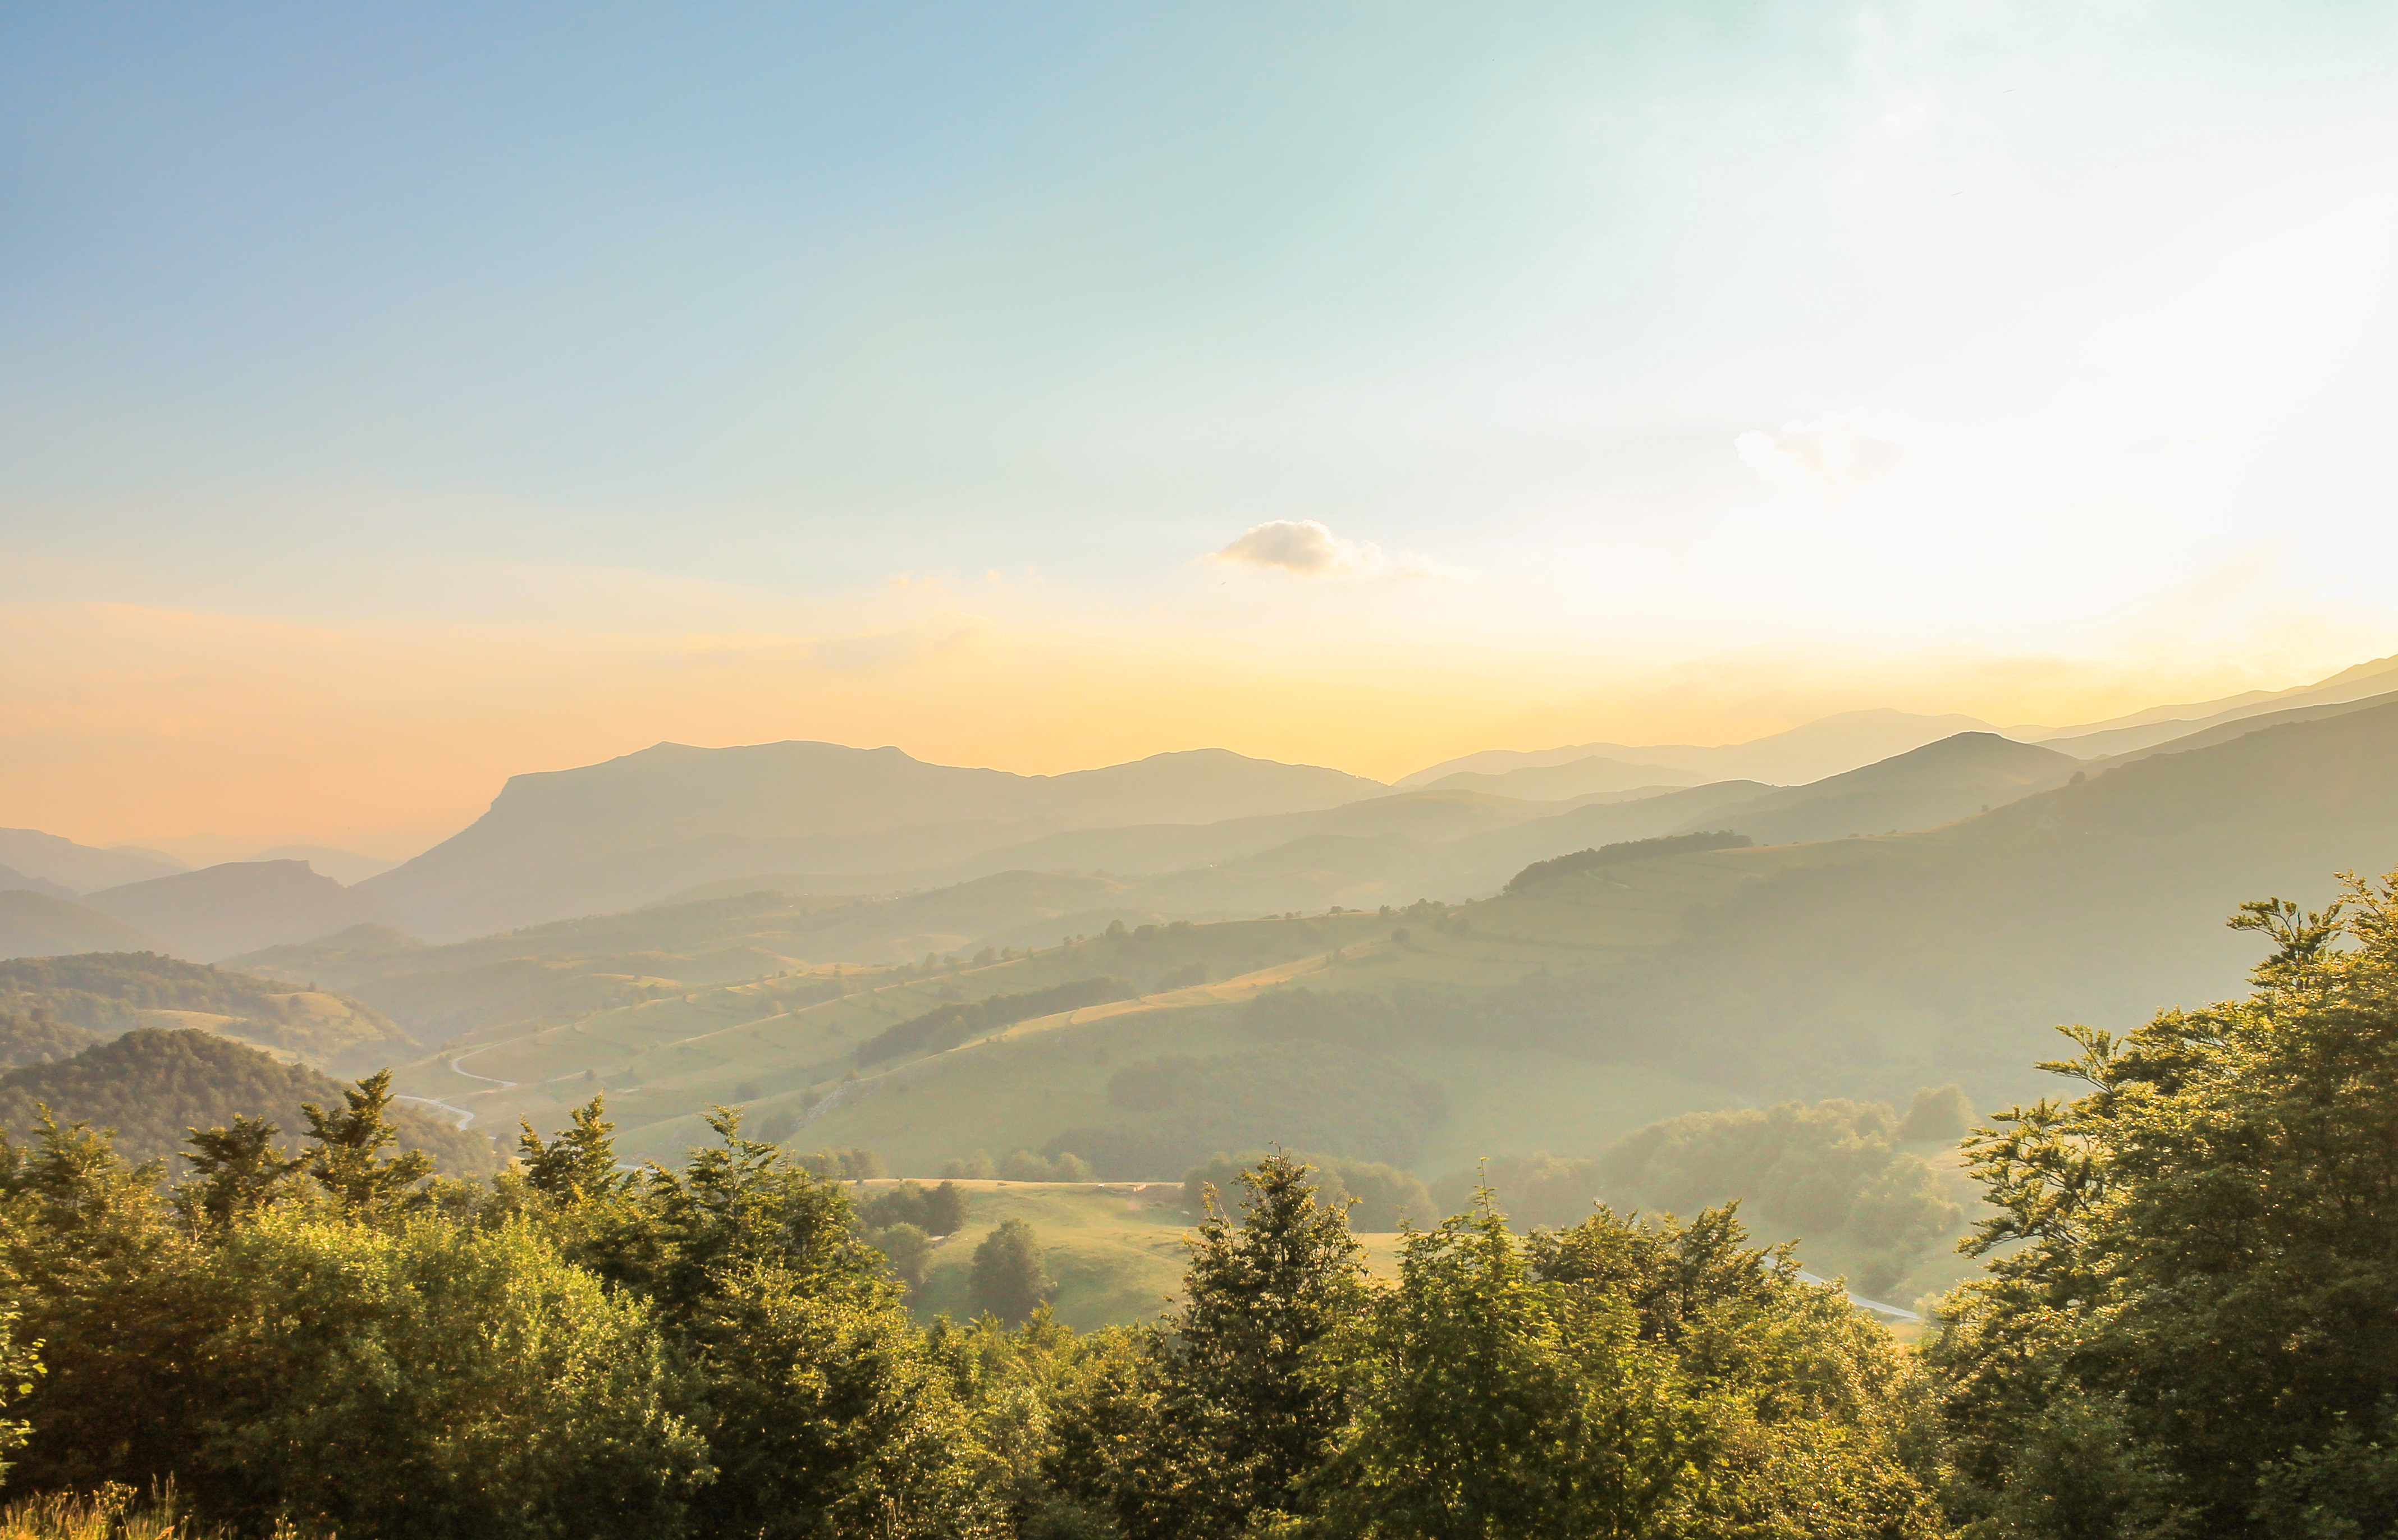 Sunrise in the Mountains, Outdoor, Road, Nature, Natural, HQ Photo